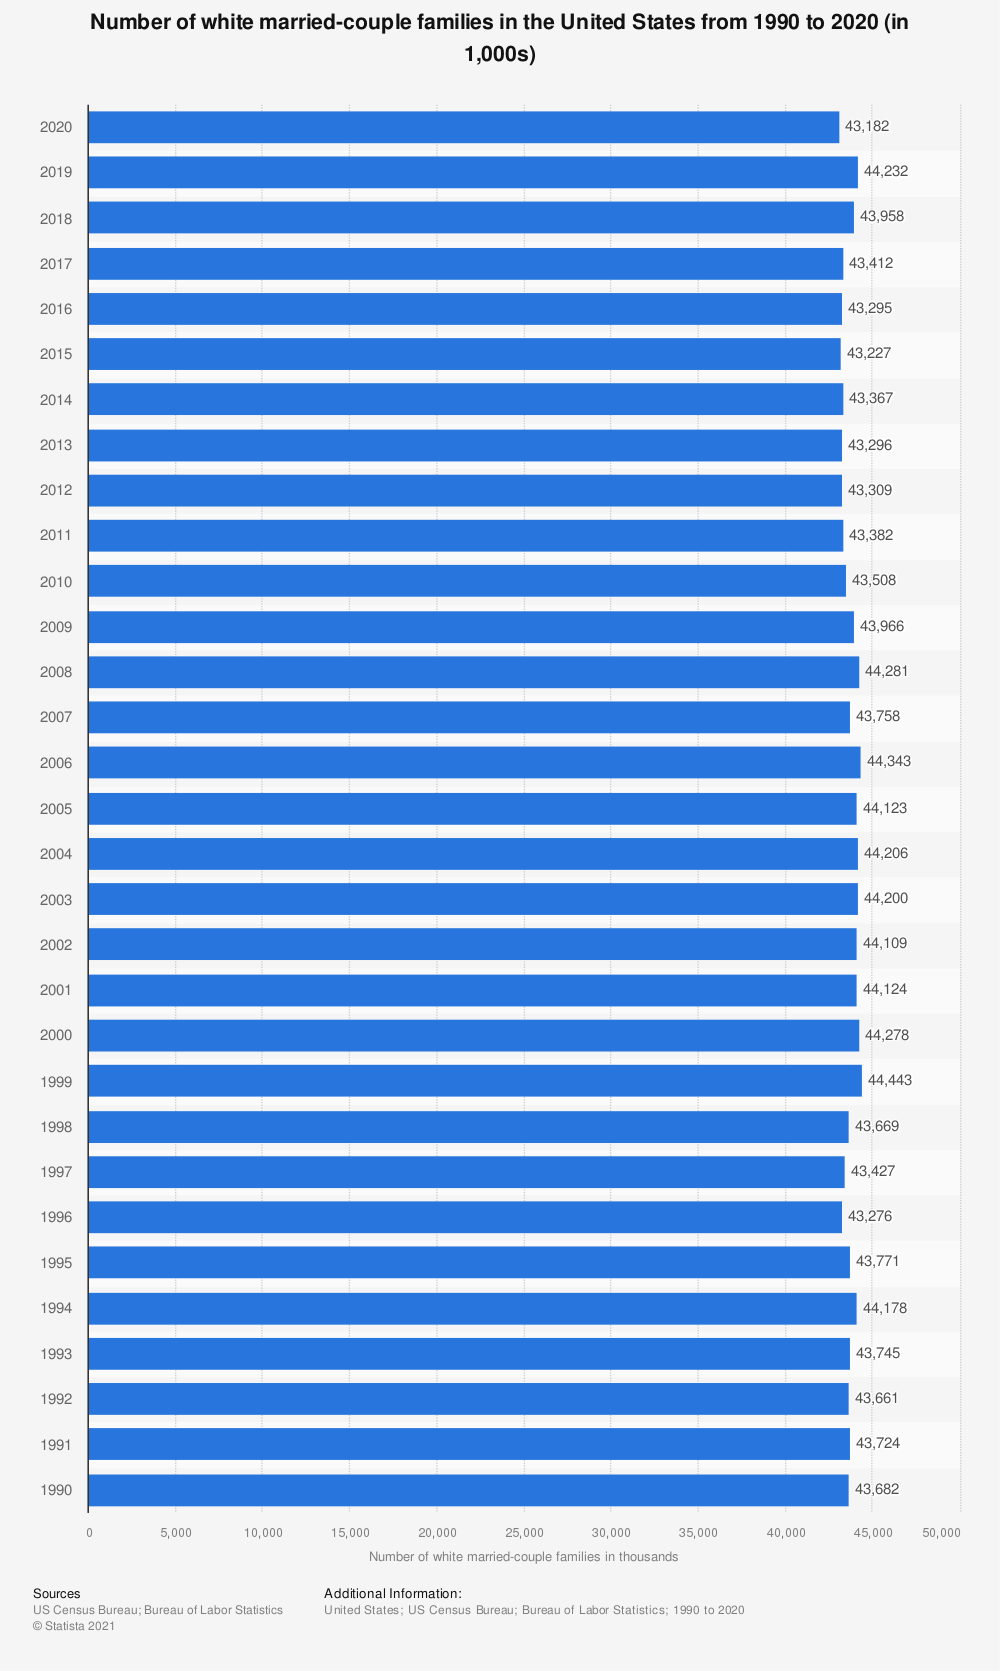 Statistic: Number of white married-couple families in the U.S. from 1990 to 2017 (in 1,000) | Statista